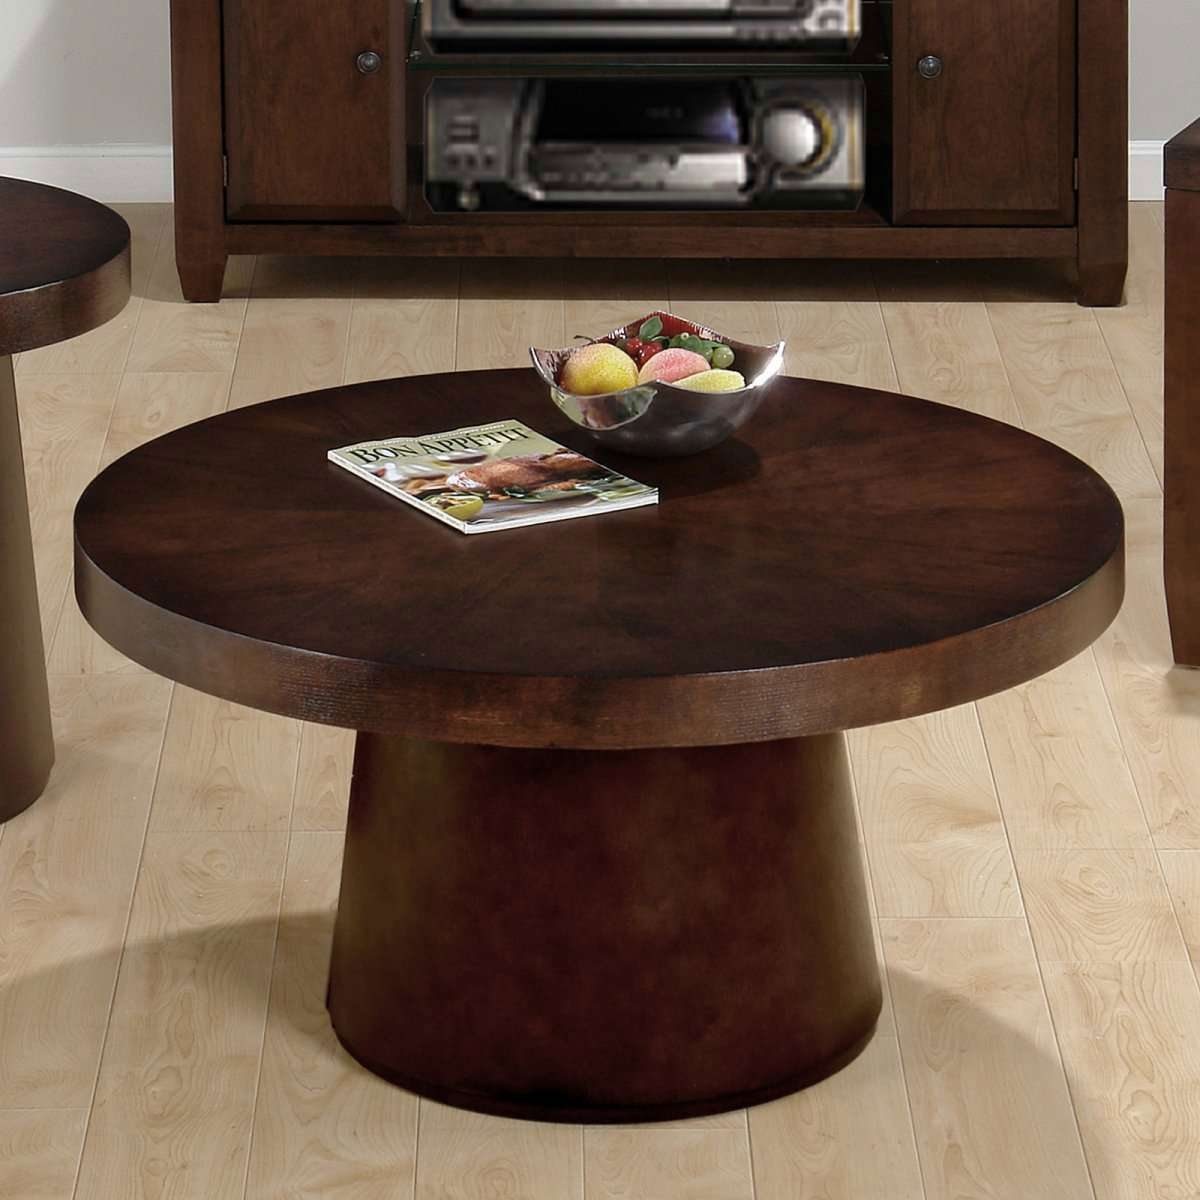 Glamorous Small Round Coffee Table Wood – Round Coffee Table Regarding Widely Used Dark Wood Round Coffee Tables (View 11 of 20)